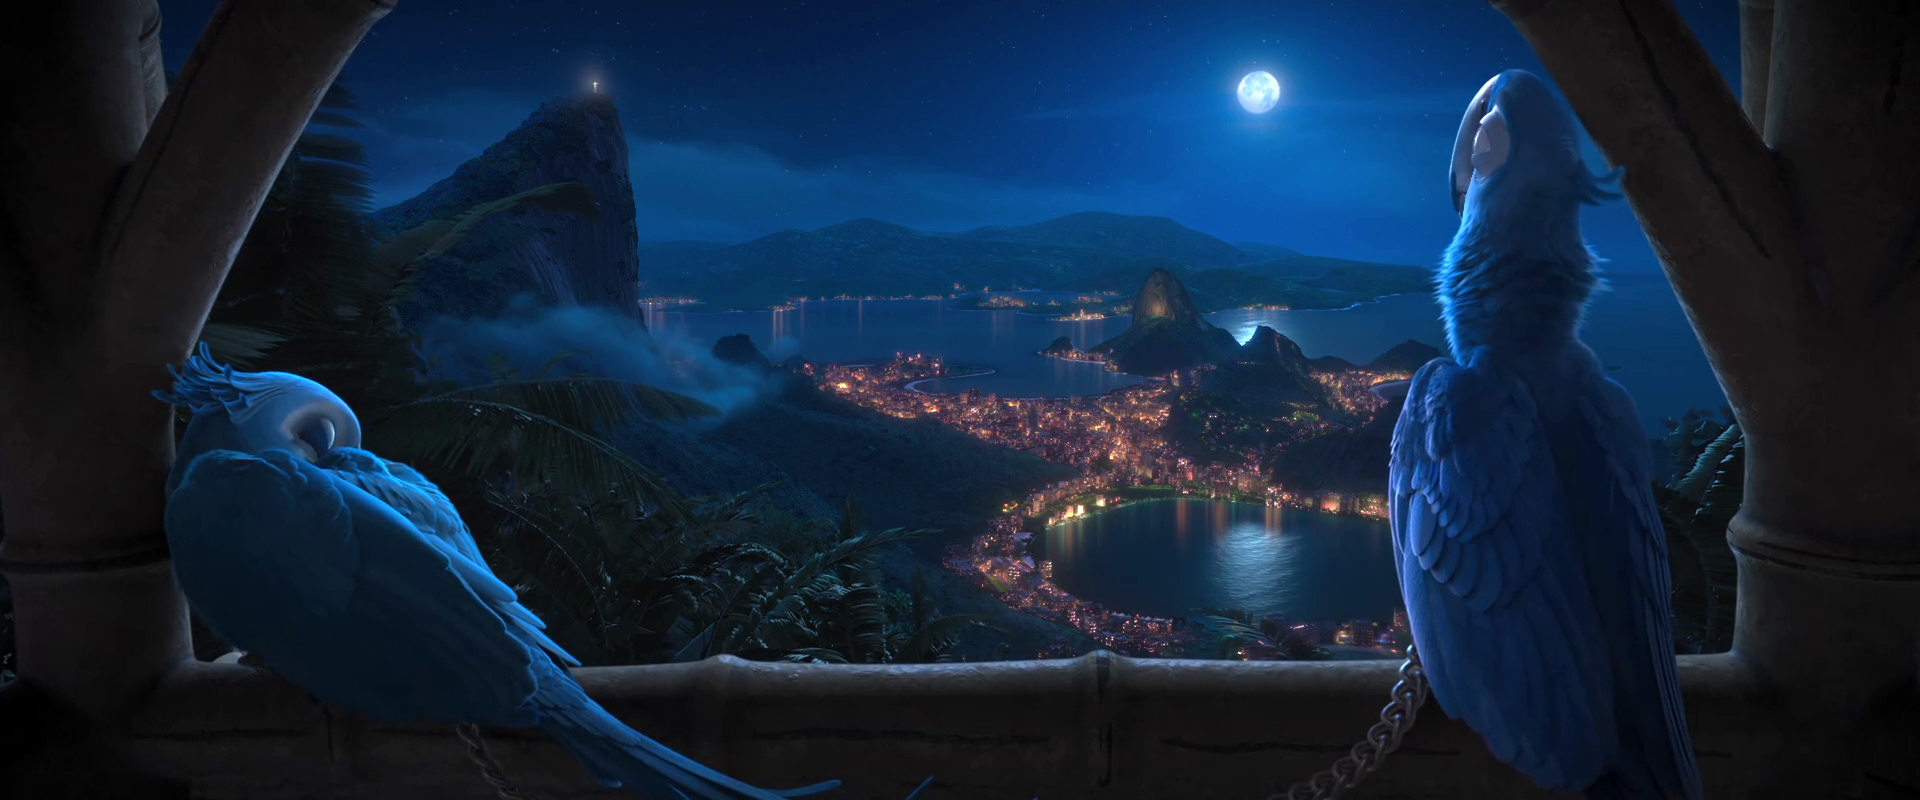 image - rio (movie) wallpaper - blu and jewel at night from vista